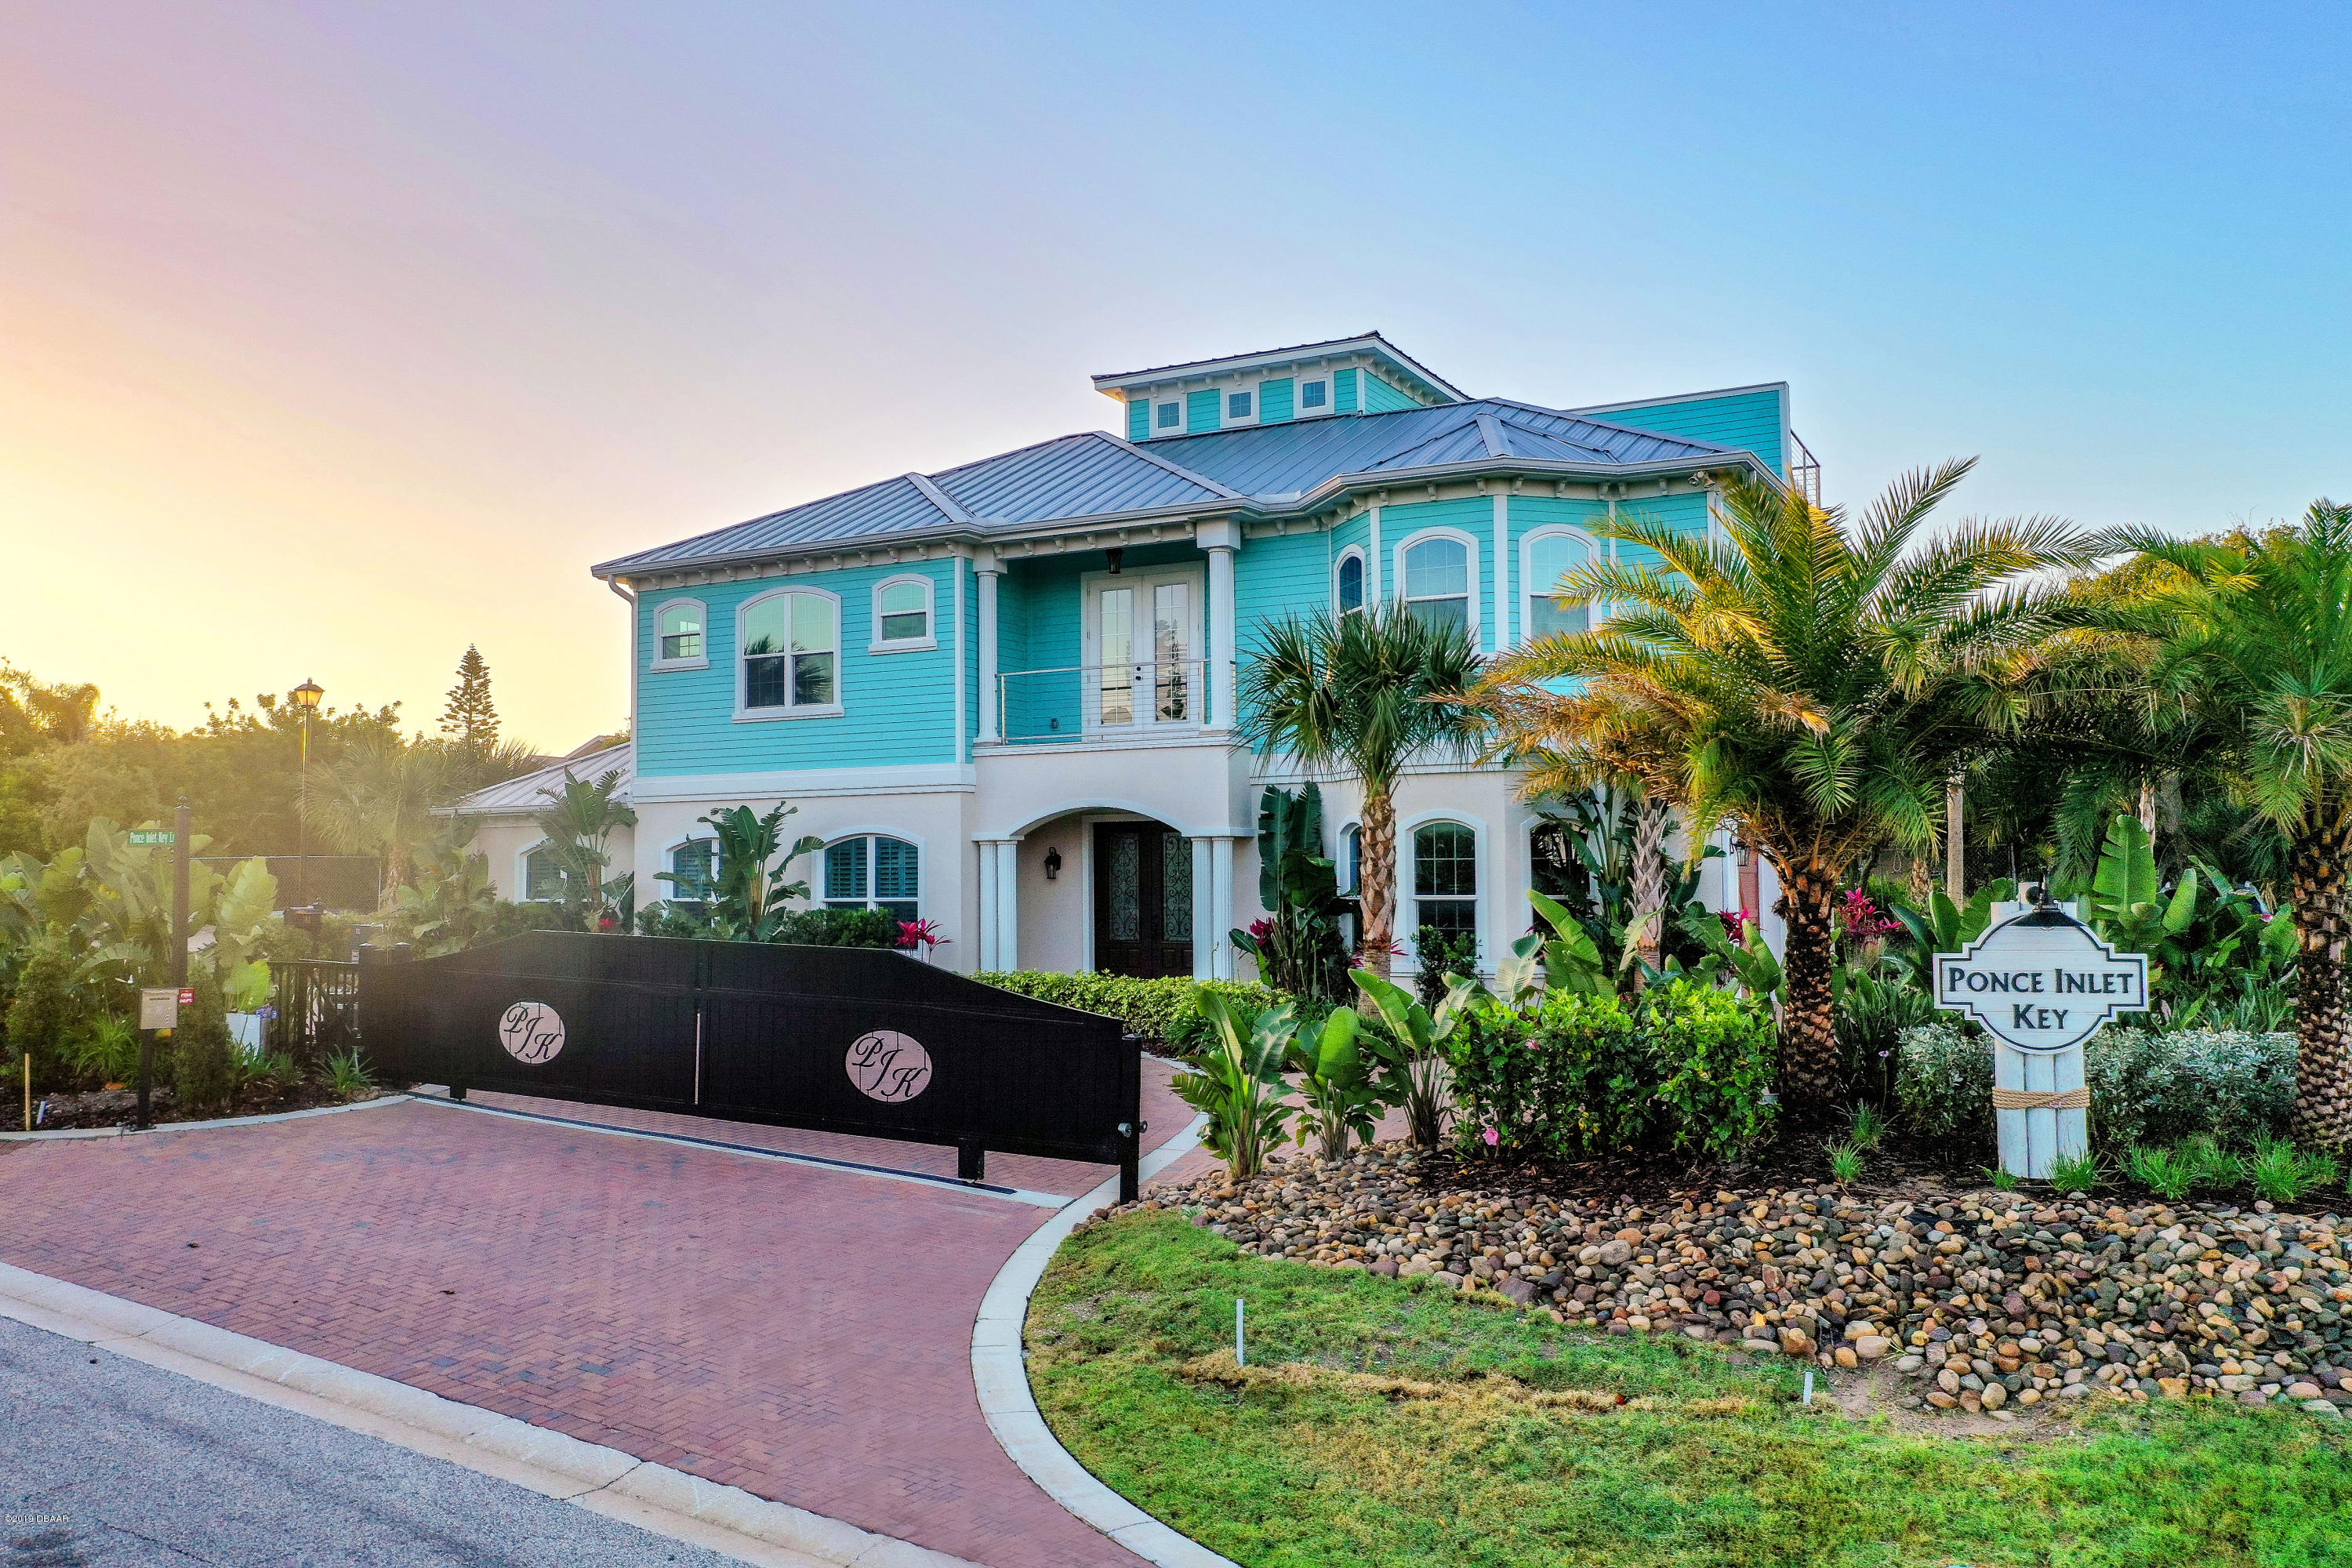 Photo of 41 Ponce Inlet Key Lane, Ponce Inlet, FL 32127